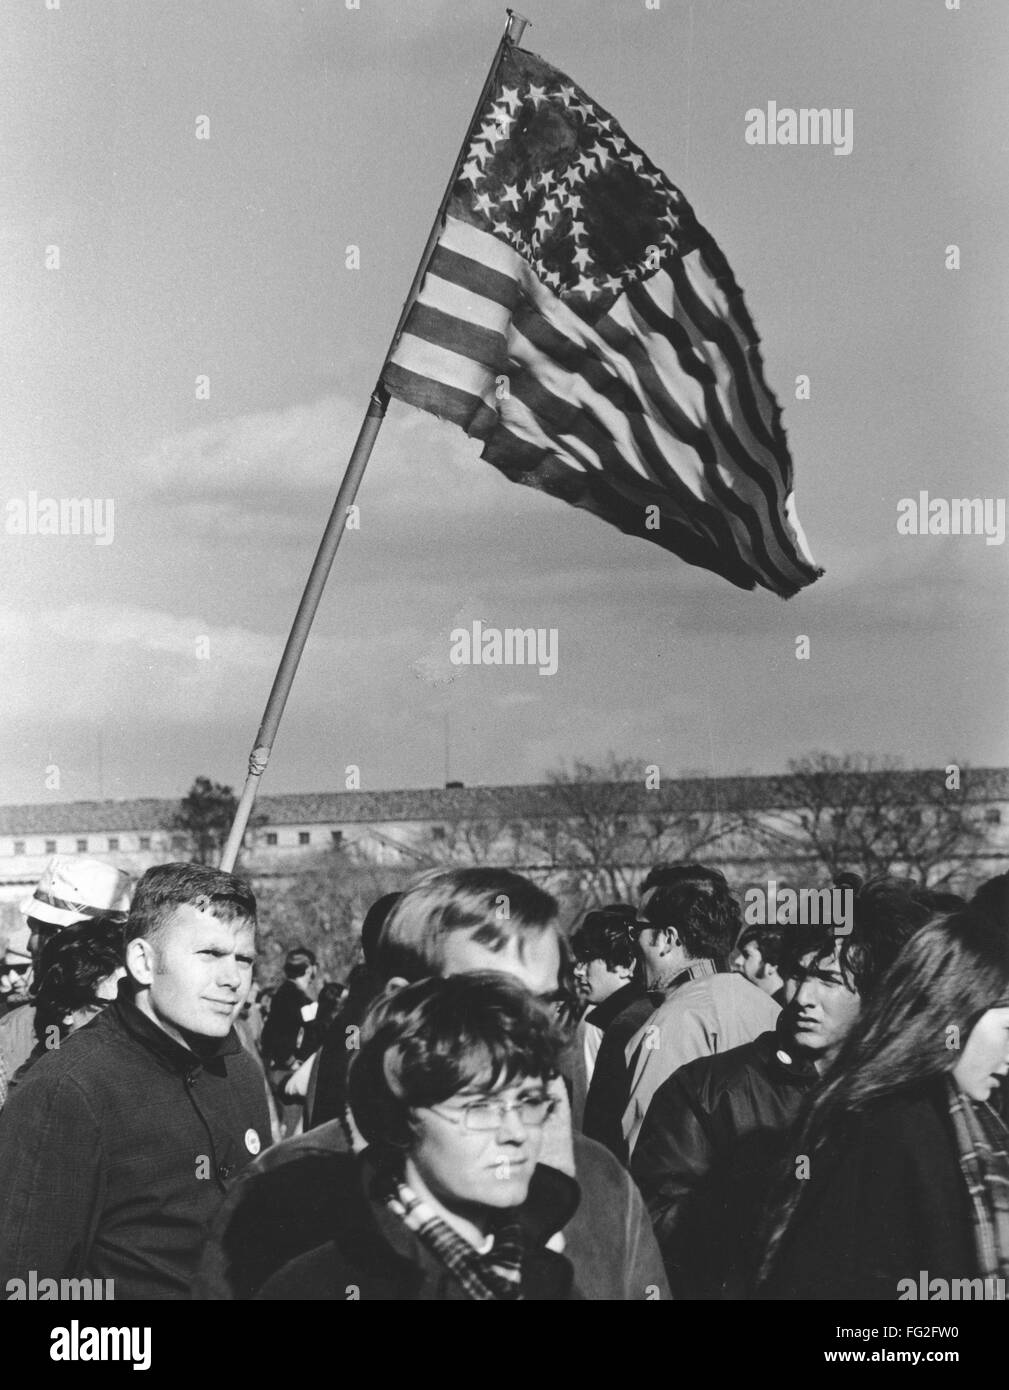 ANTI-WAR PROTEST, 1969. /nProtesters waving an American flag with a peace sign demonstrate on the Mall in Washington, Stock Photo